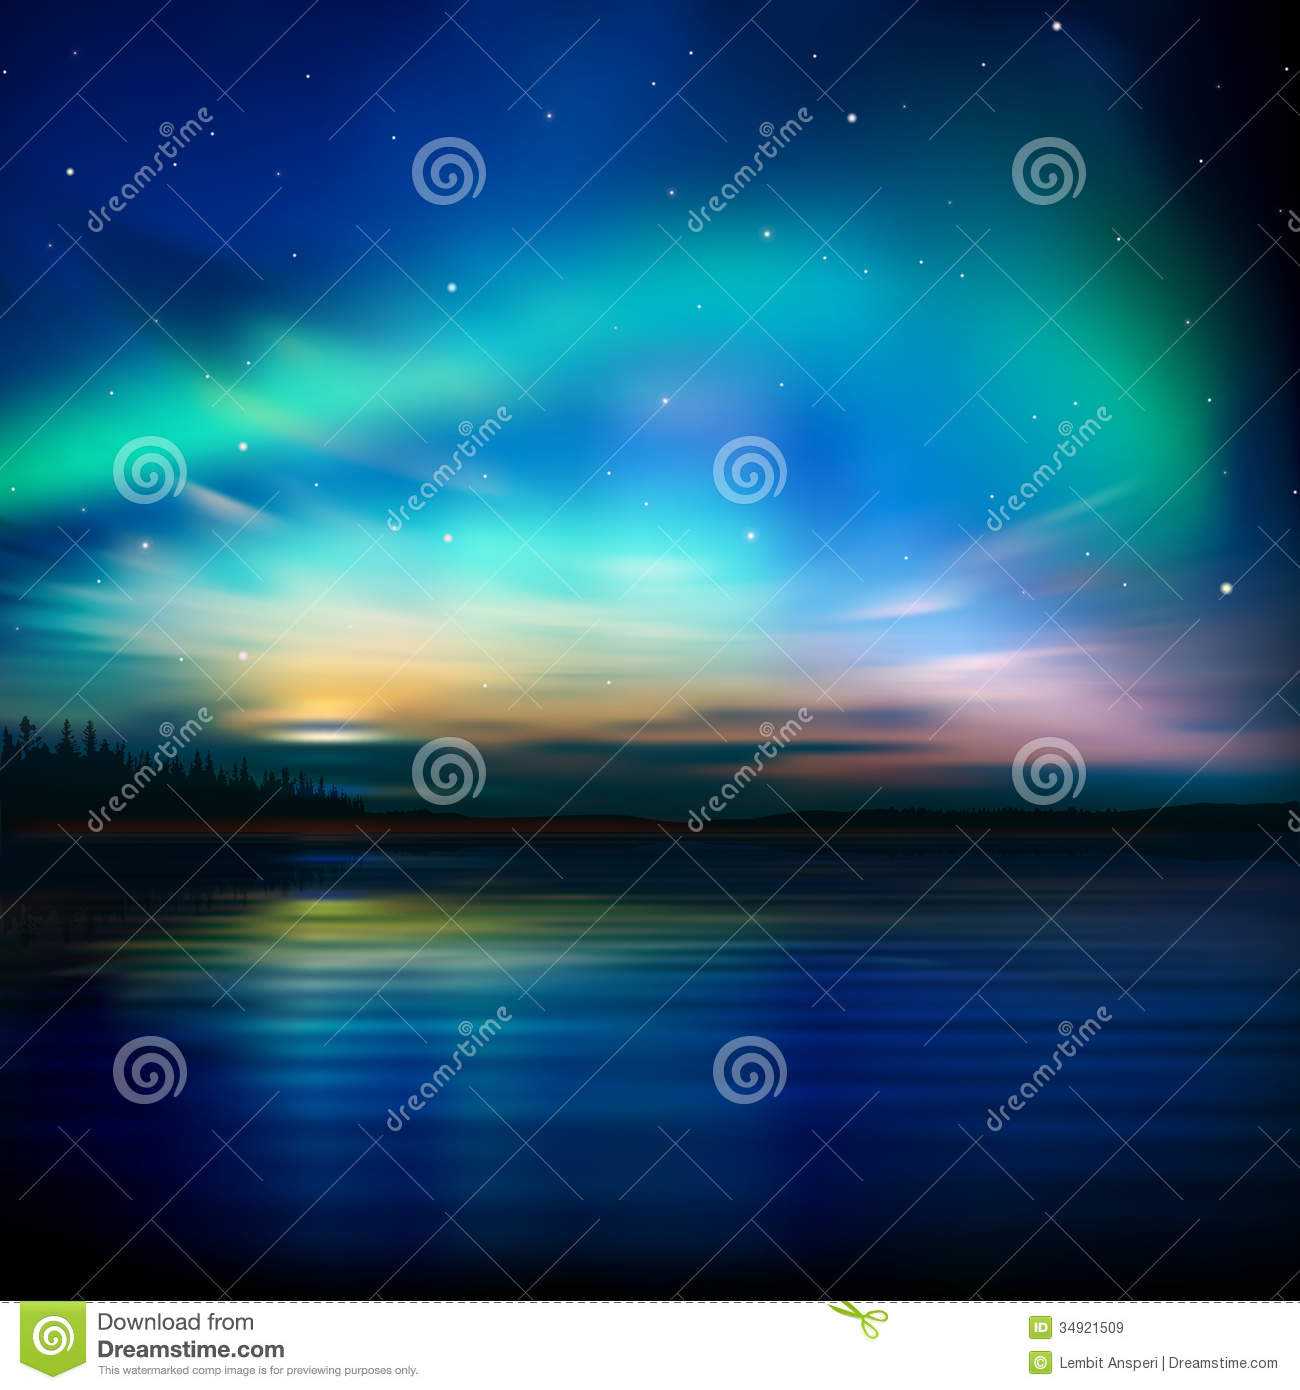 Abstract Background With Sunset And Mountains Royalty Free Stock